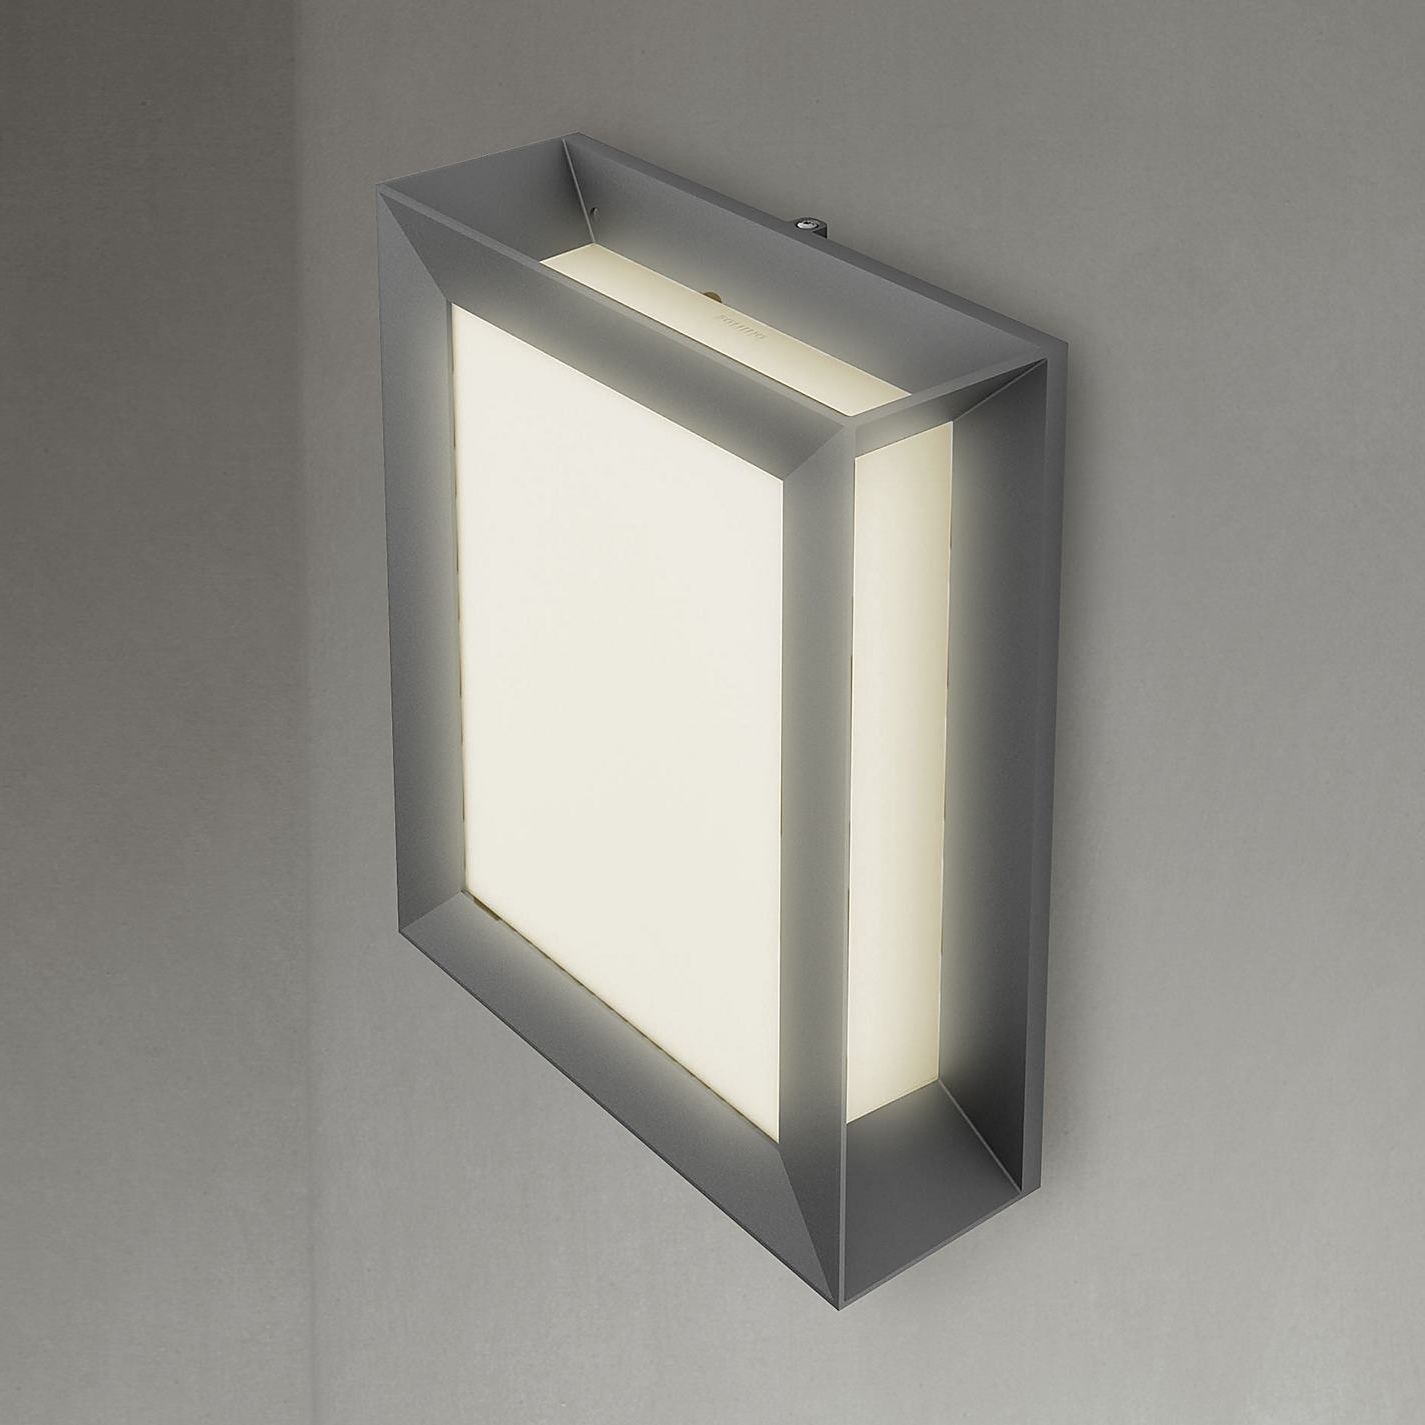 Buy Philips Karp Led Outdoor Wall Light Anthracite John Lewis With Regard To Latest Small Outdoor Wall Lights (View 3 of 20)